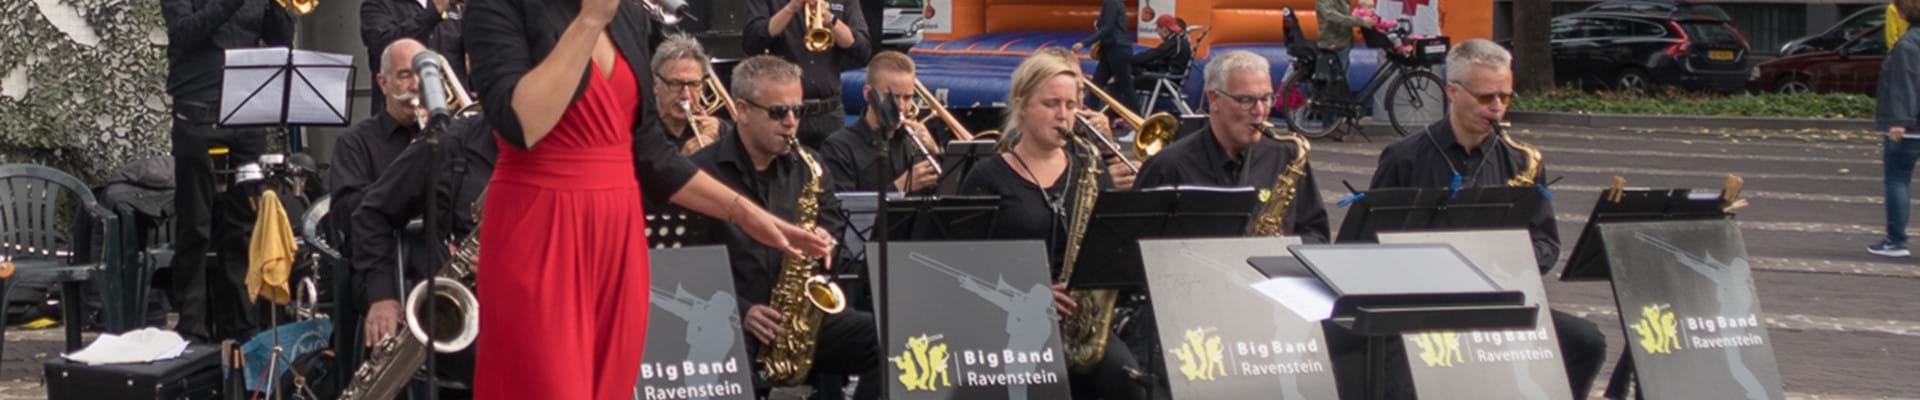 BIG BAND RAVENSTEIN